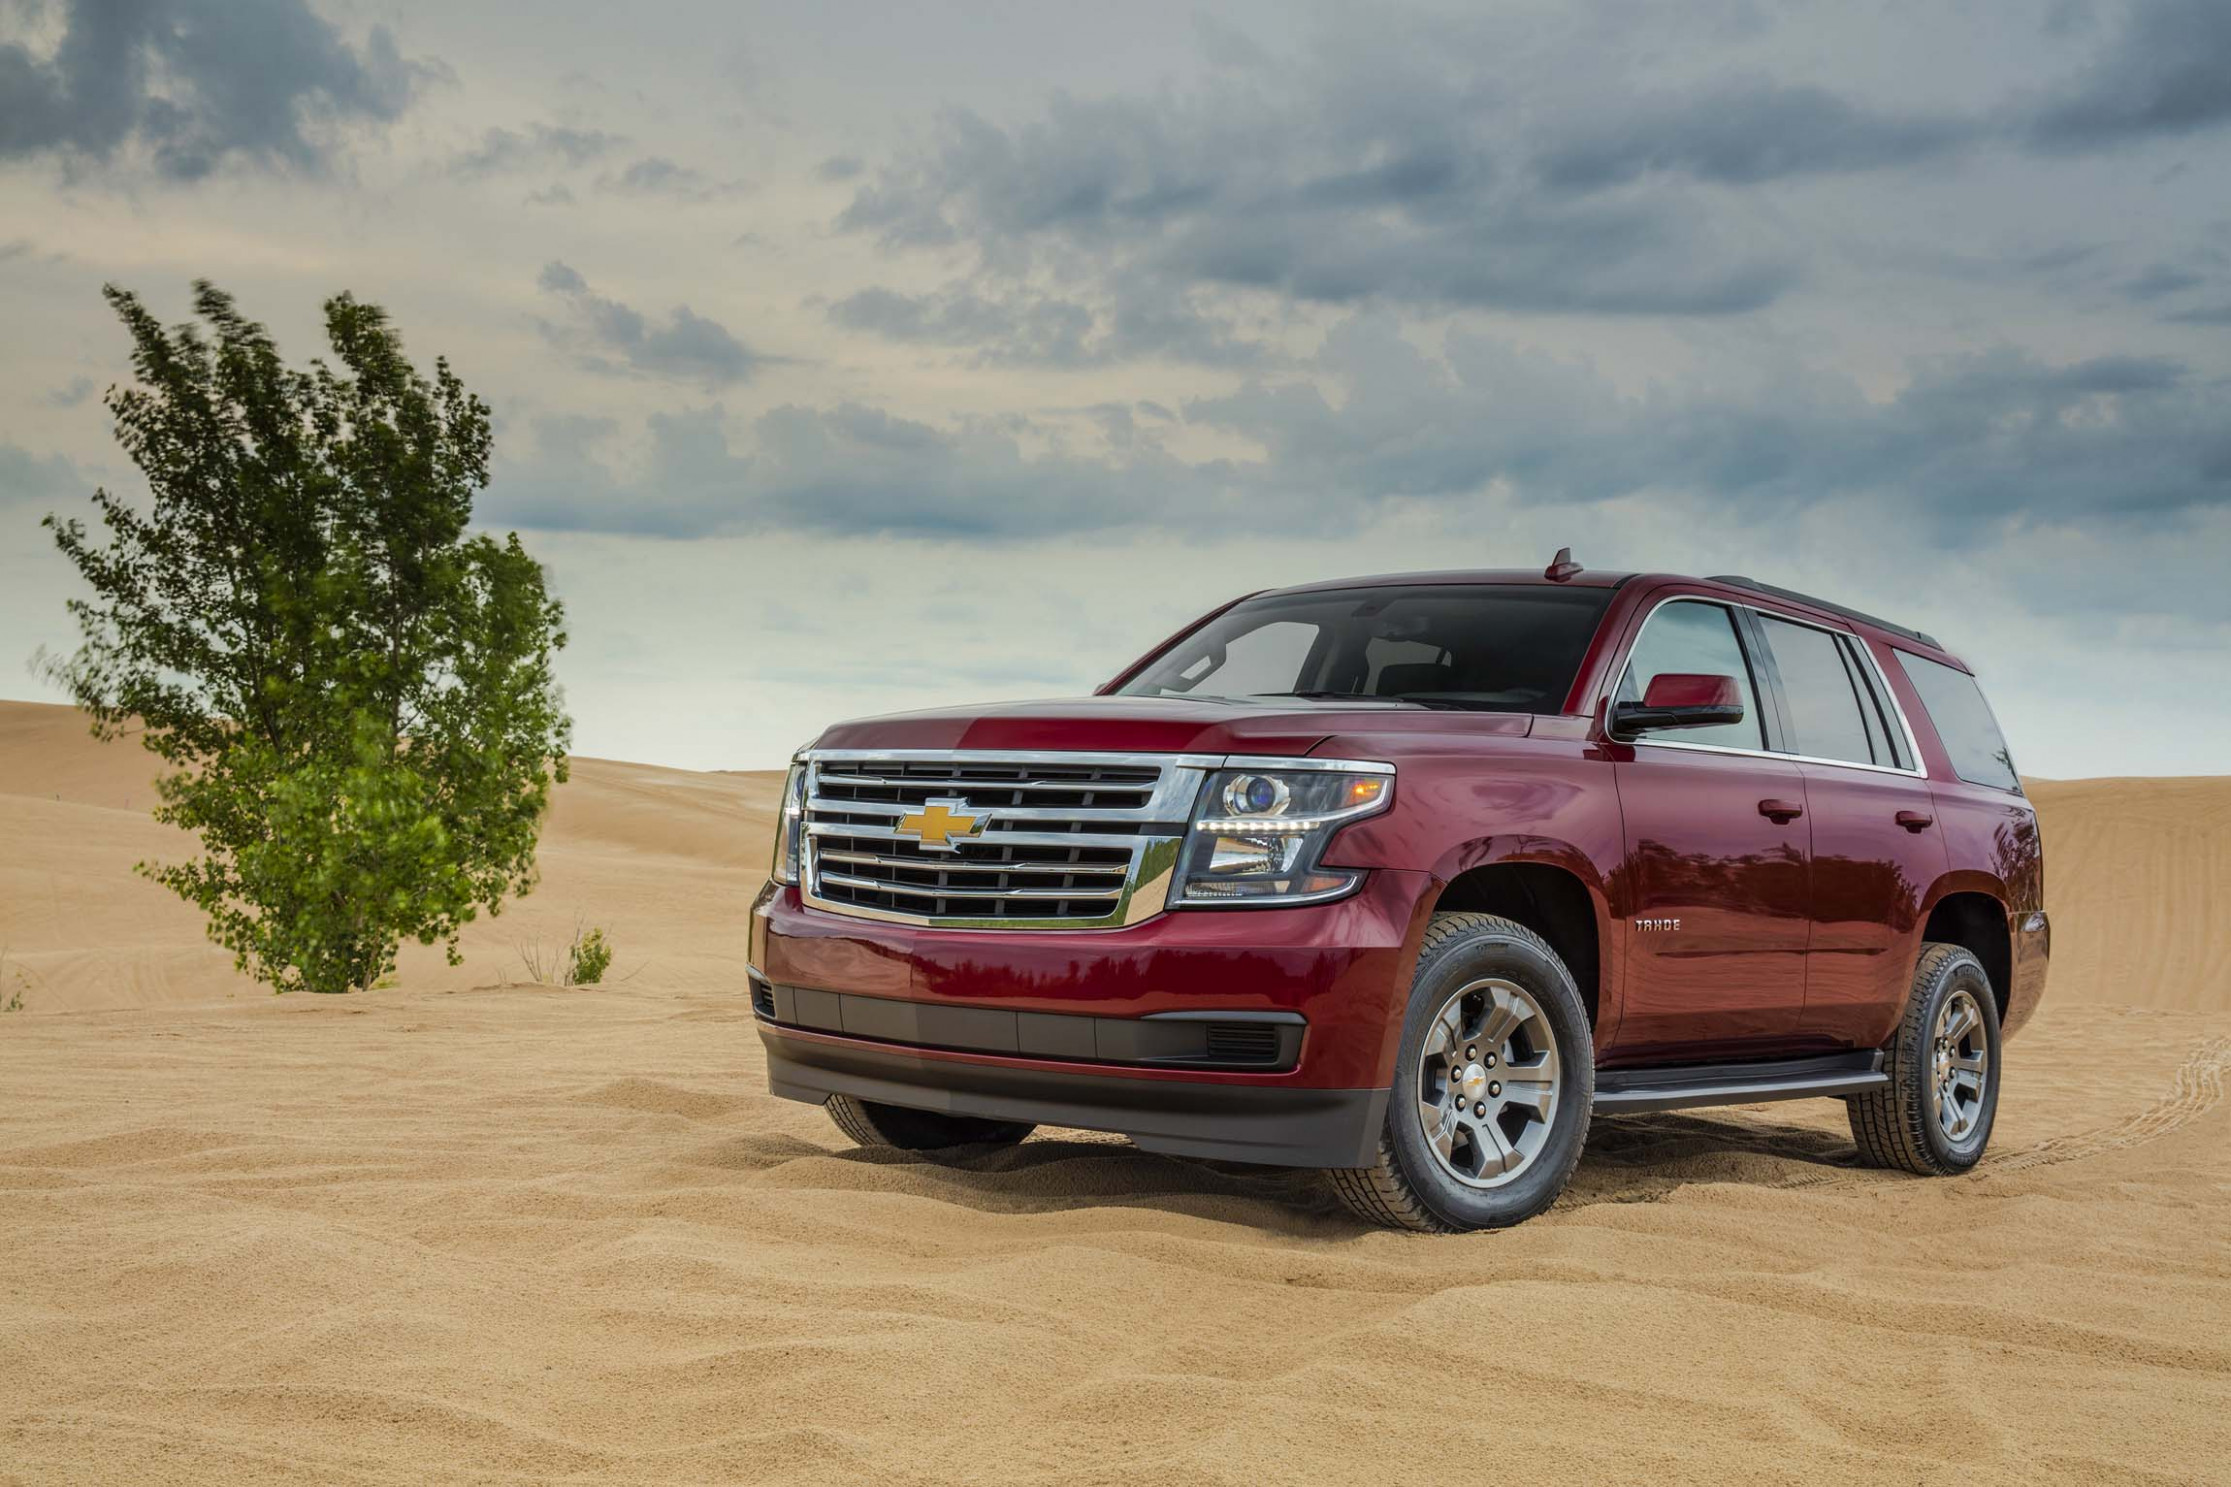 11 Chevrolet Tahoe (Chevy) Review, Ratings, Specs, Prices, and ..